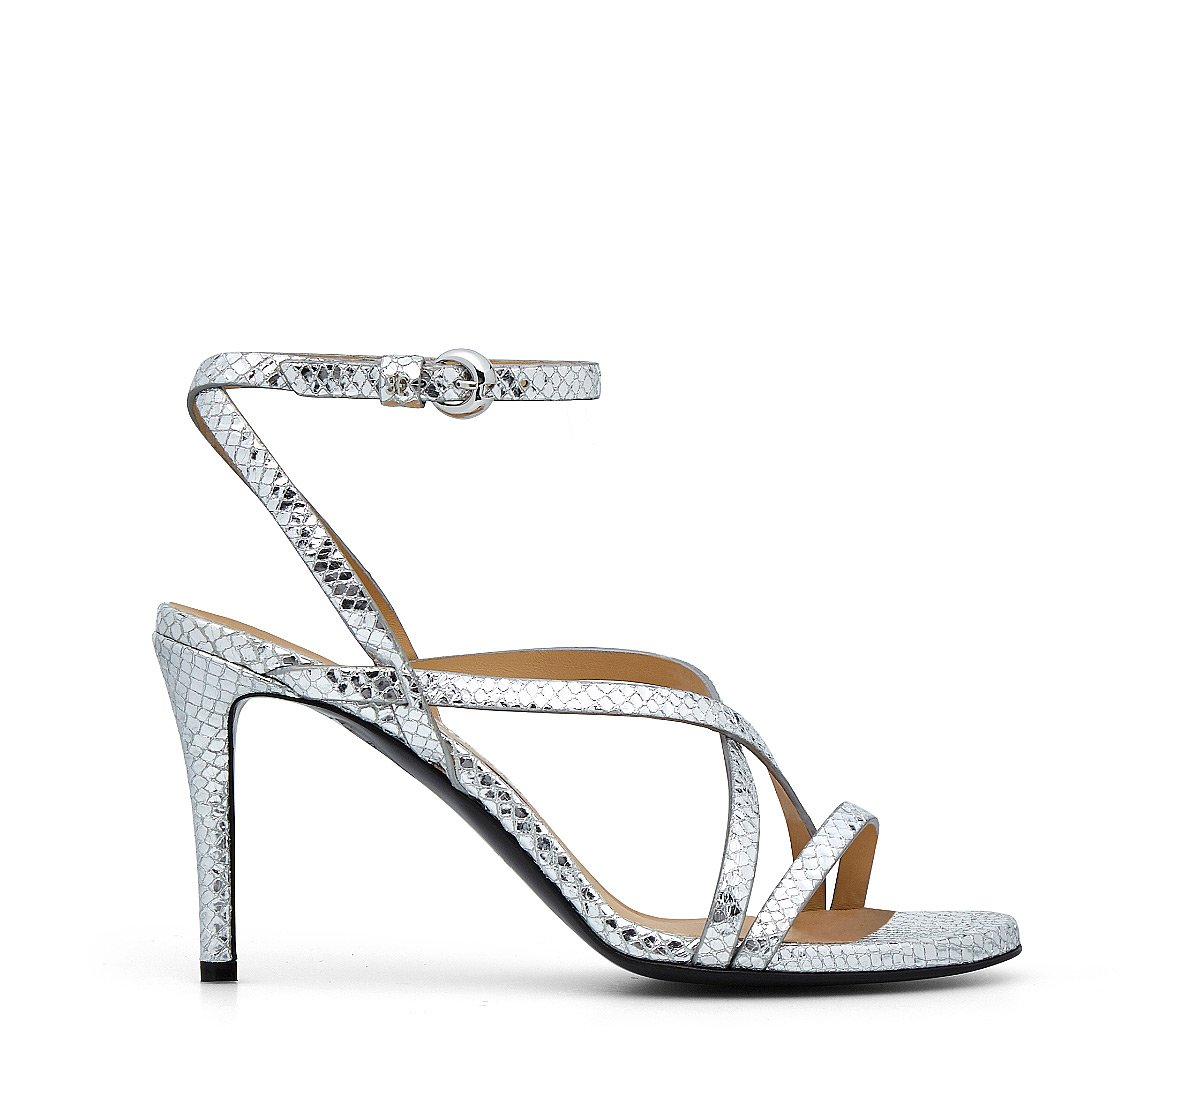 Sandals in reptile-print leather